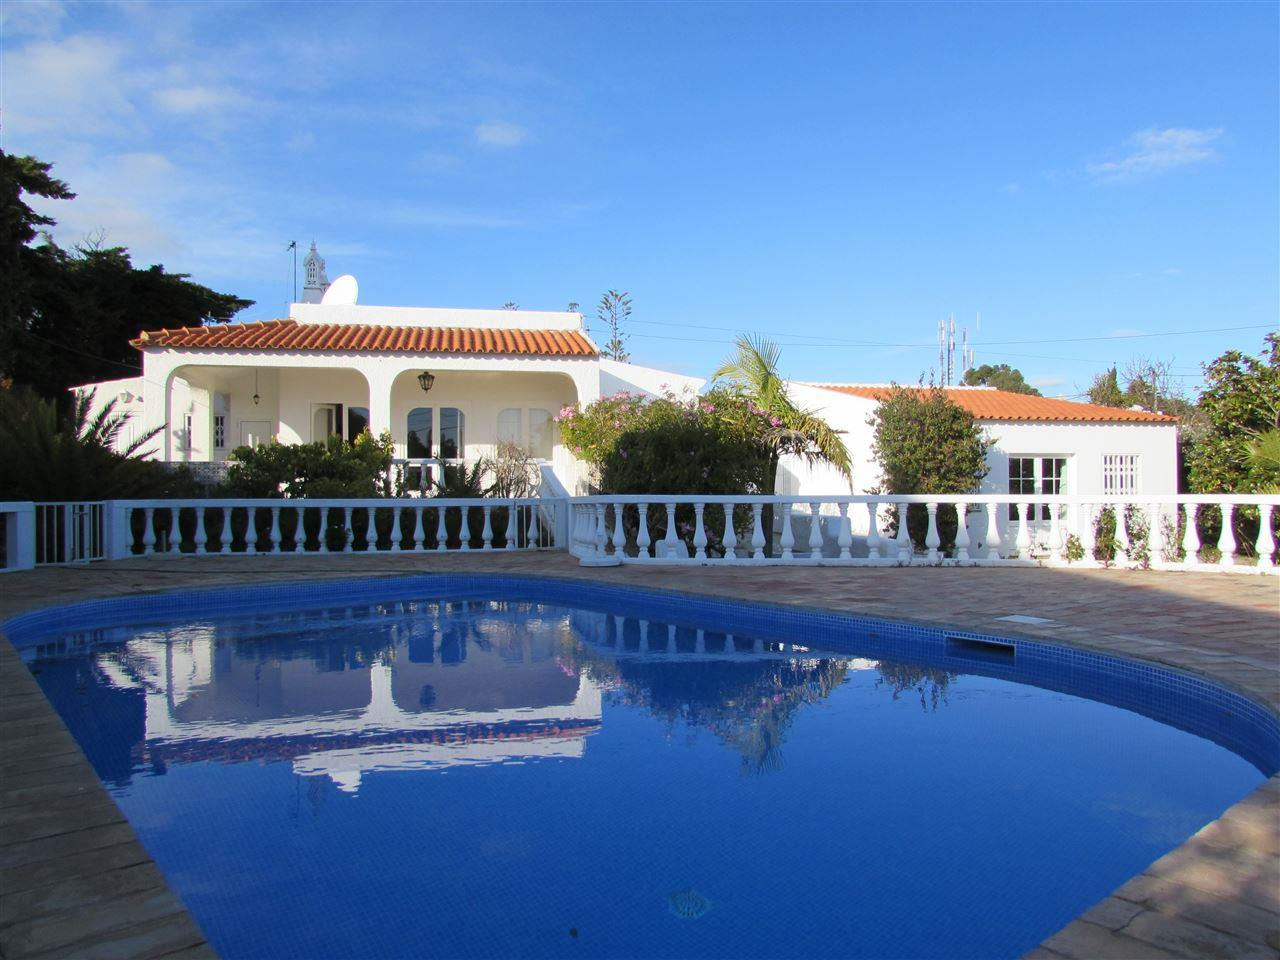 Single Family Home for Sale at Detached house, 3 bedrooms, for Sale Other Portugal, Other Areas In Portugal, Portugal